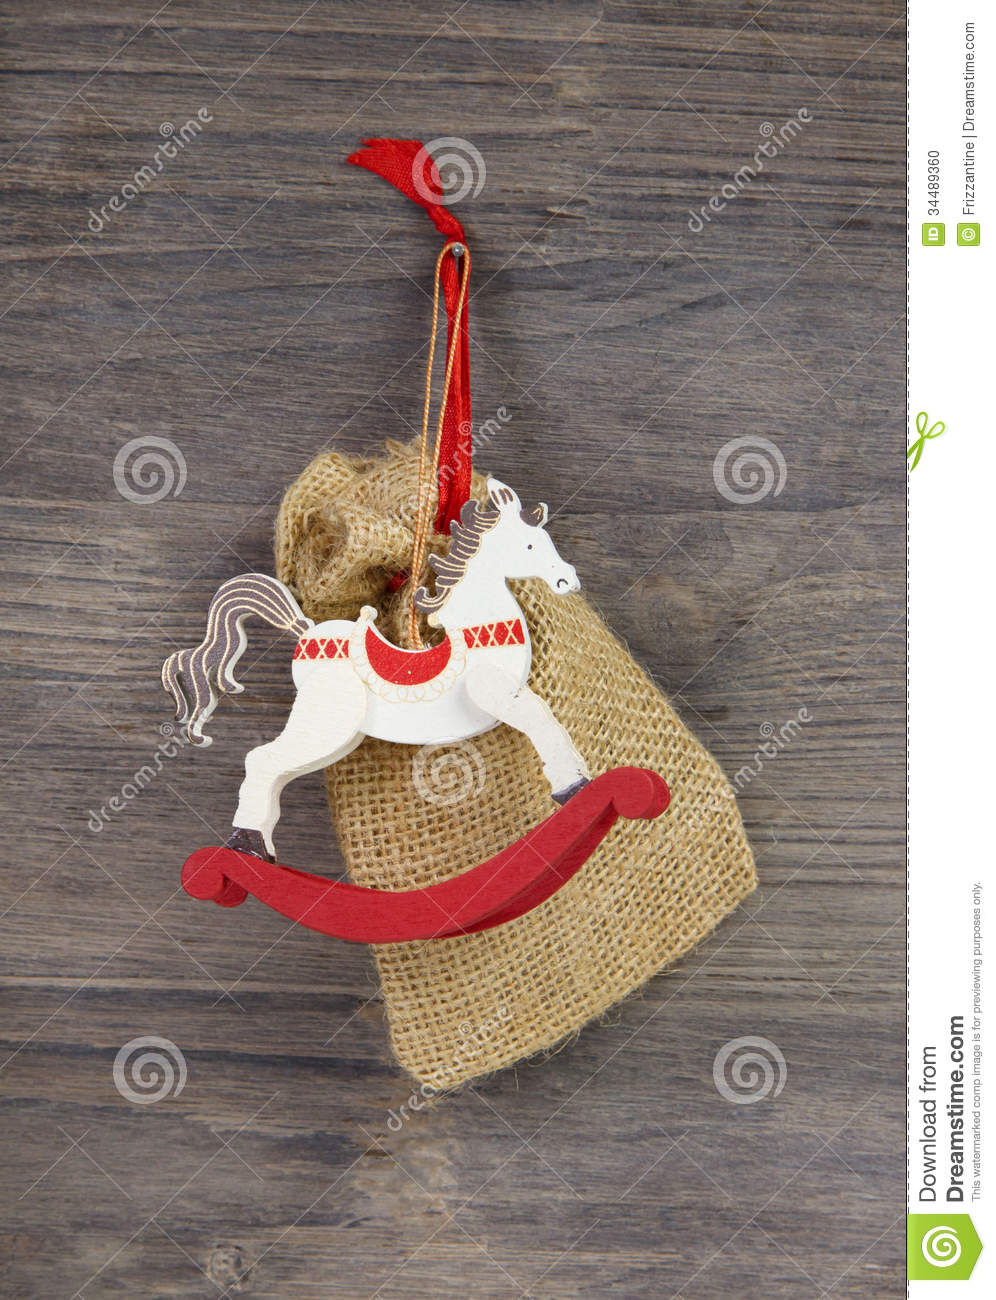 Rocking or wooden toy horse red and white christmas decoration stock photo image 34489360 for Photo decoration